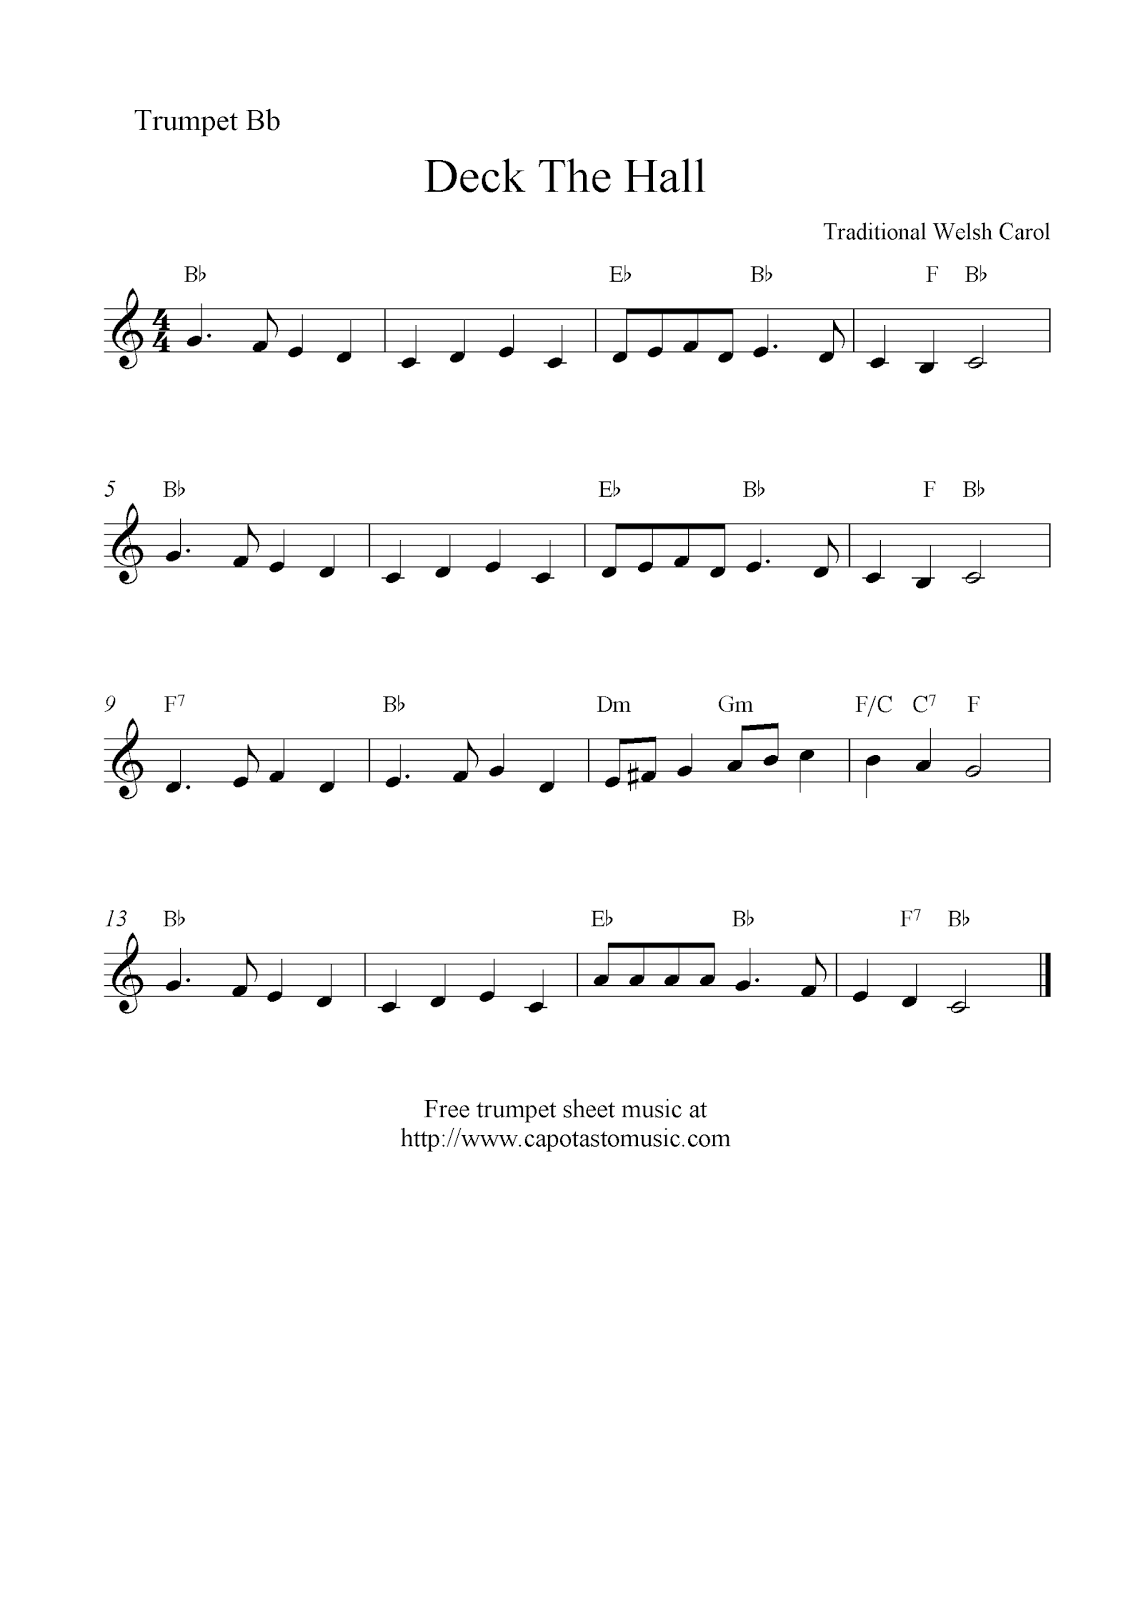 Deck the halls sheet music for trumpet